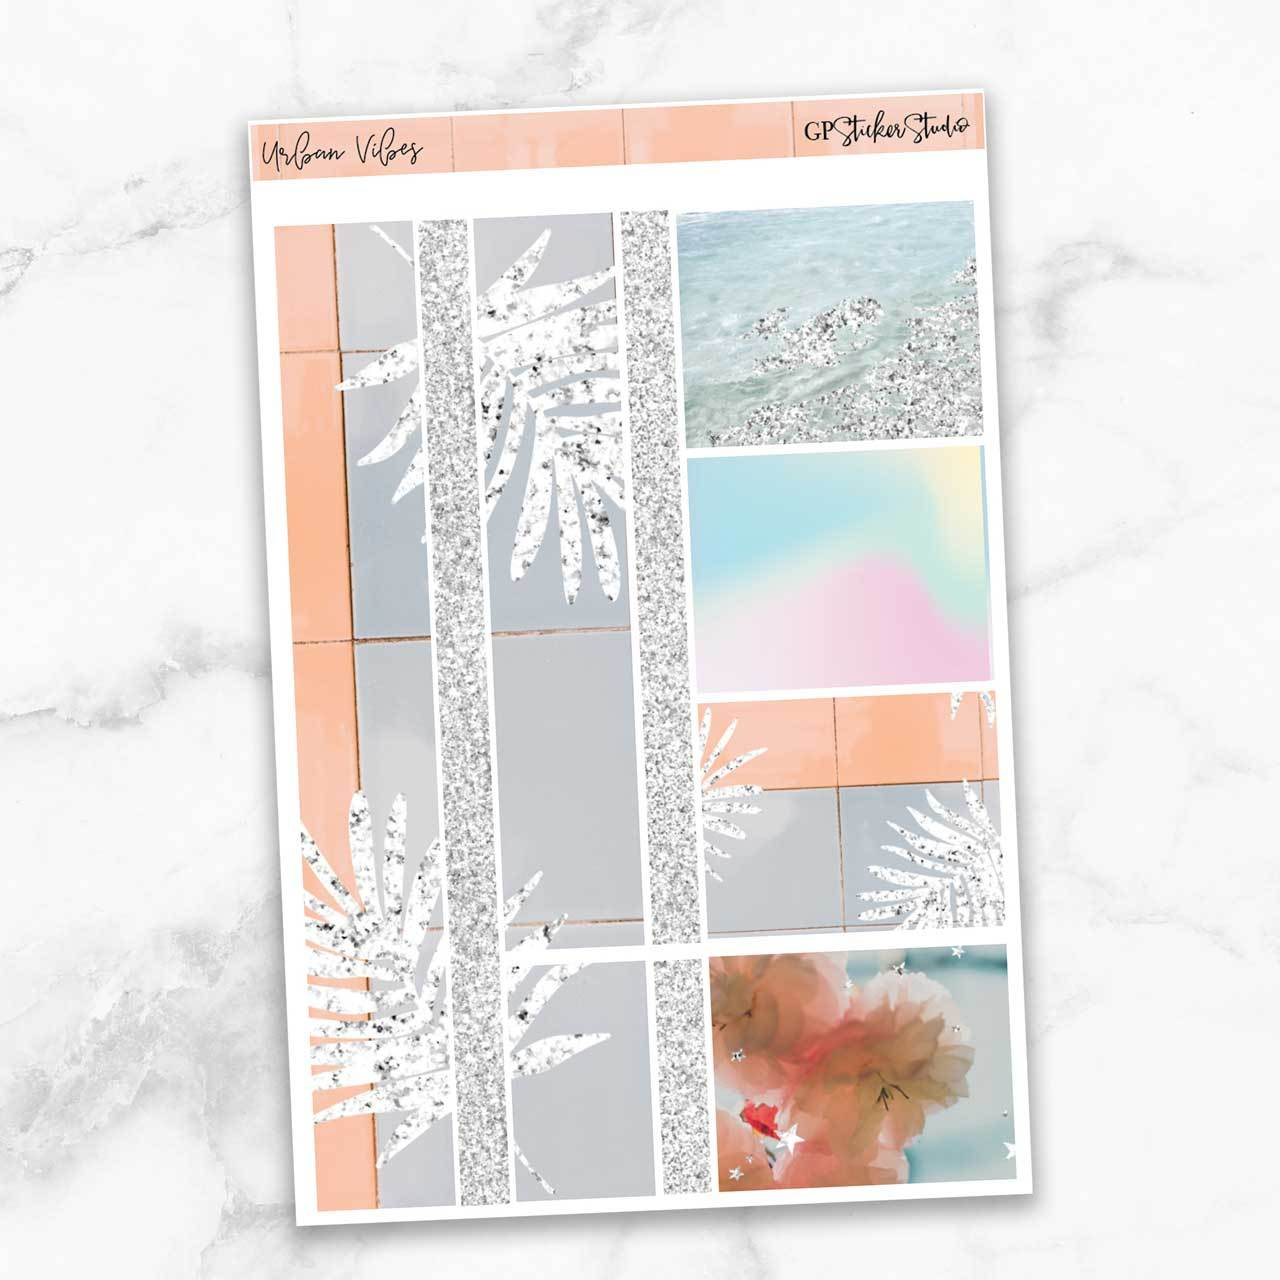 URBAN VIBES Washi Sheet Stickers-The GP Studio